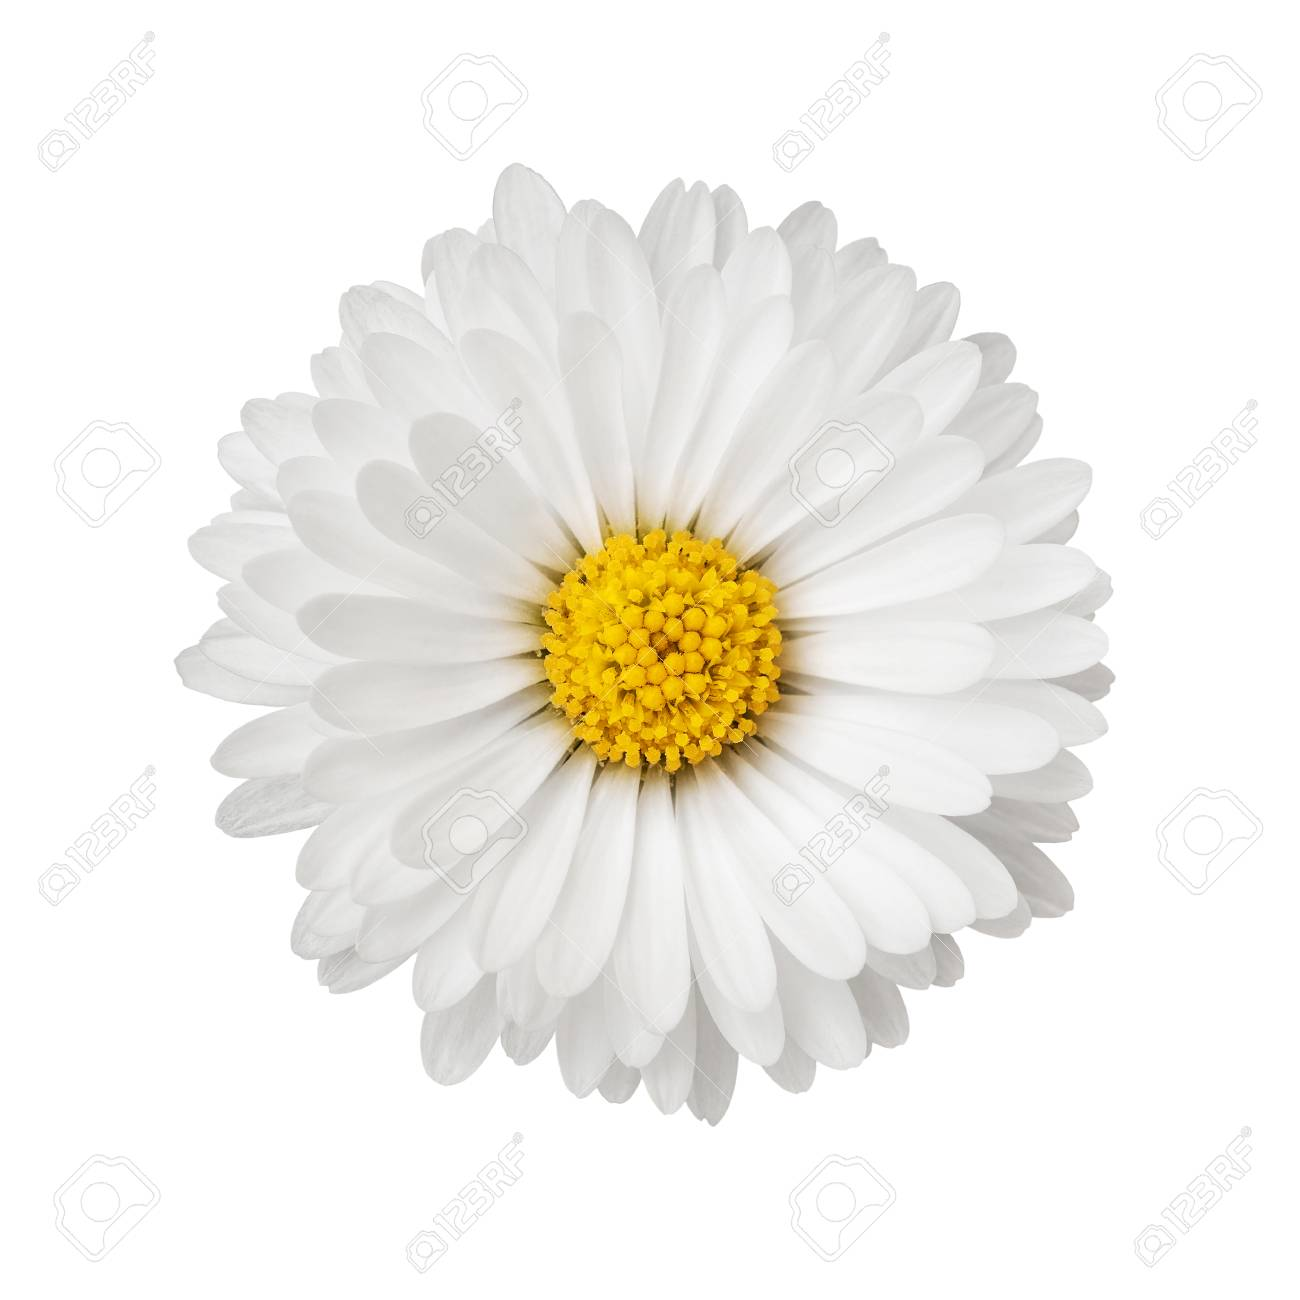 Close up of daisy flower isolated on white background - 121352113